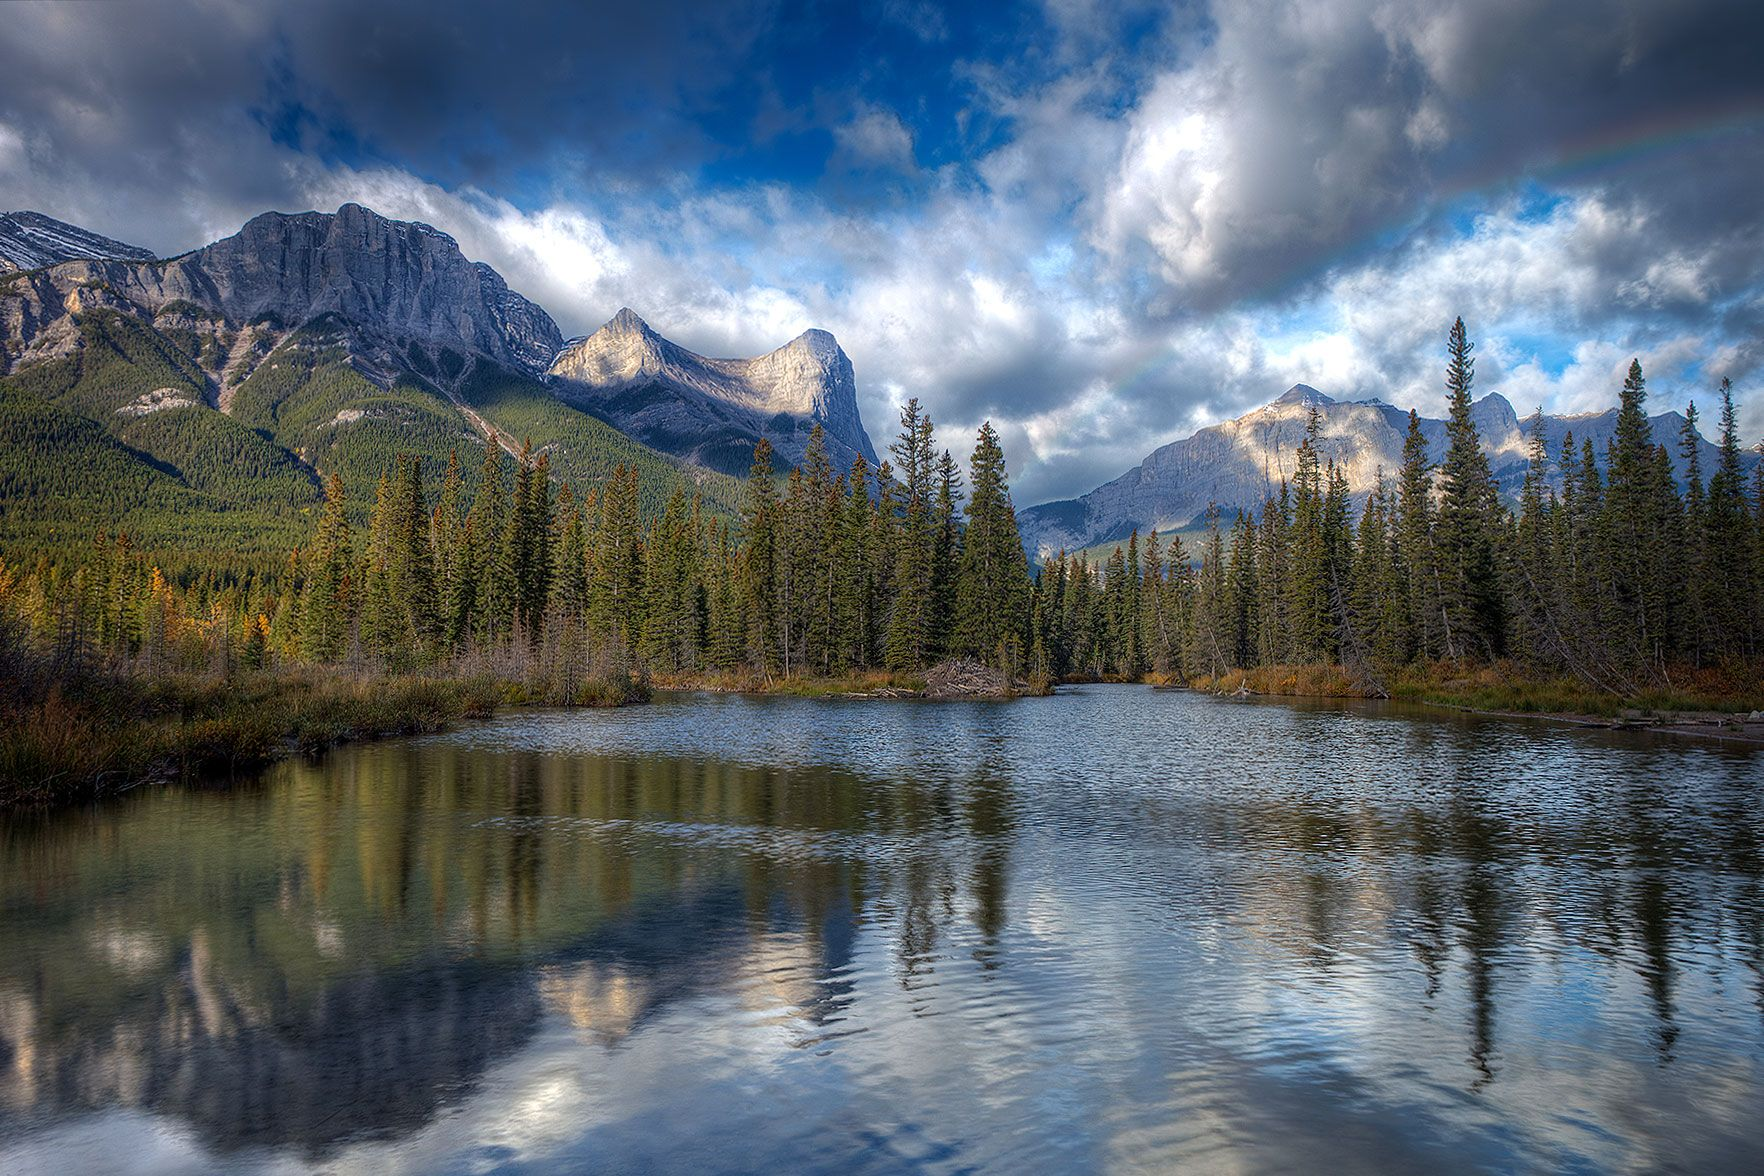 Ha-Ling-Rundle-Fall-1800-noWM.jpg